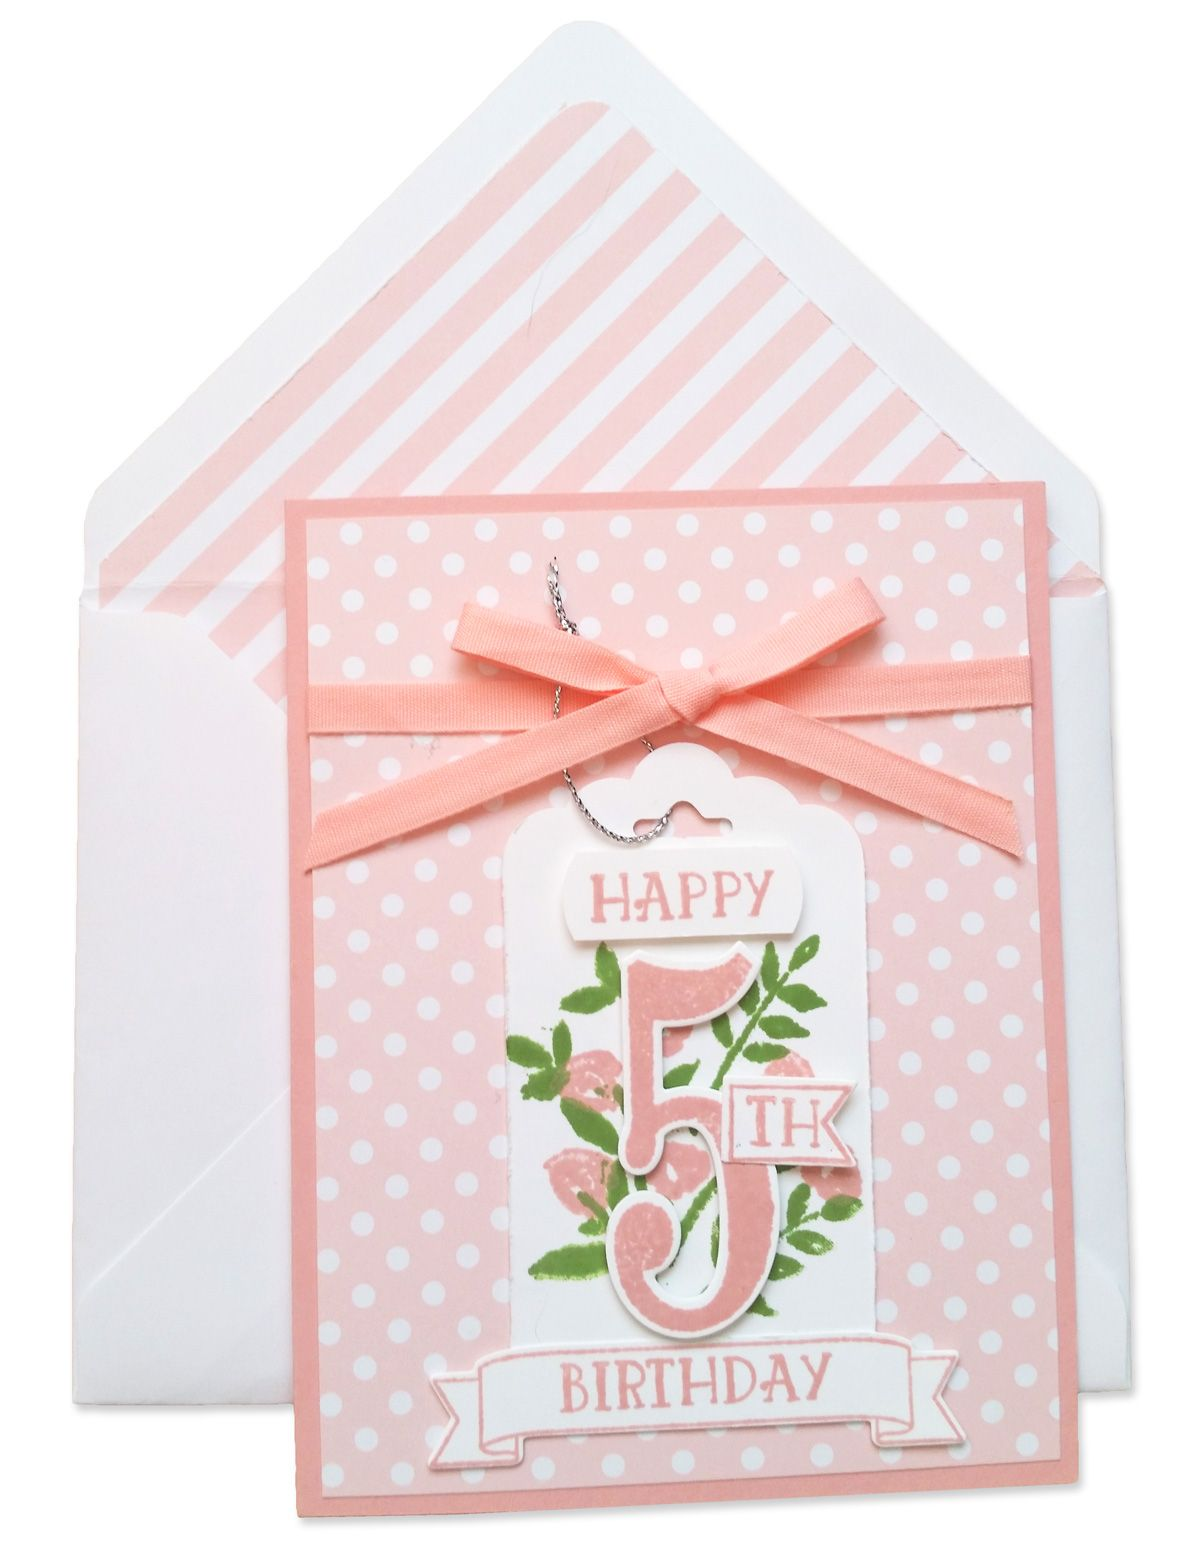 Number of Years Birthday Card Carol Brouwers Stampin Up Site – Birthday Card Site